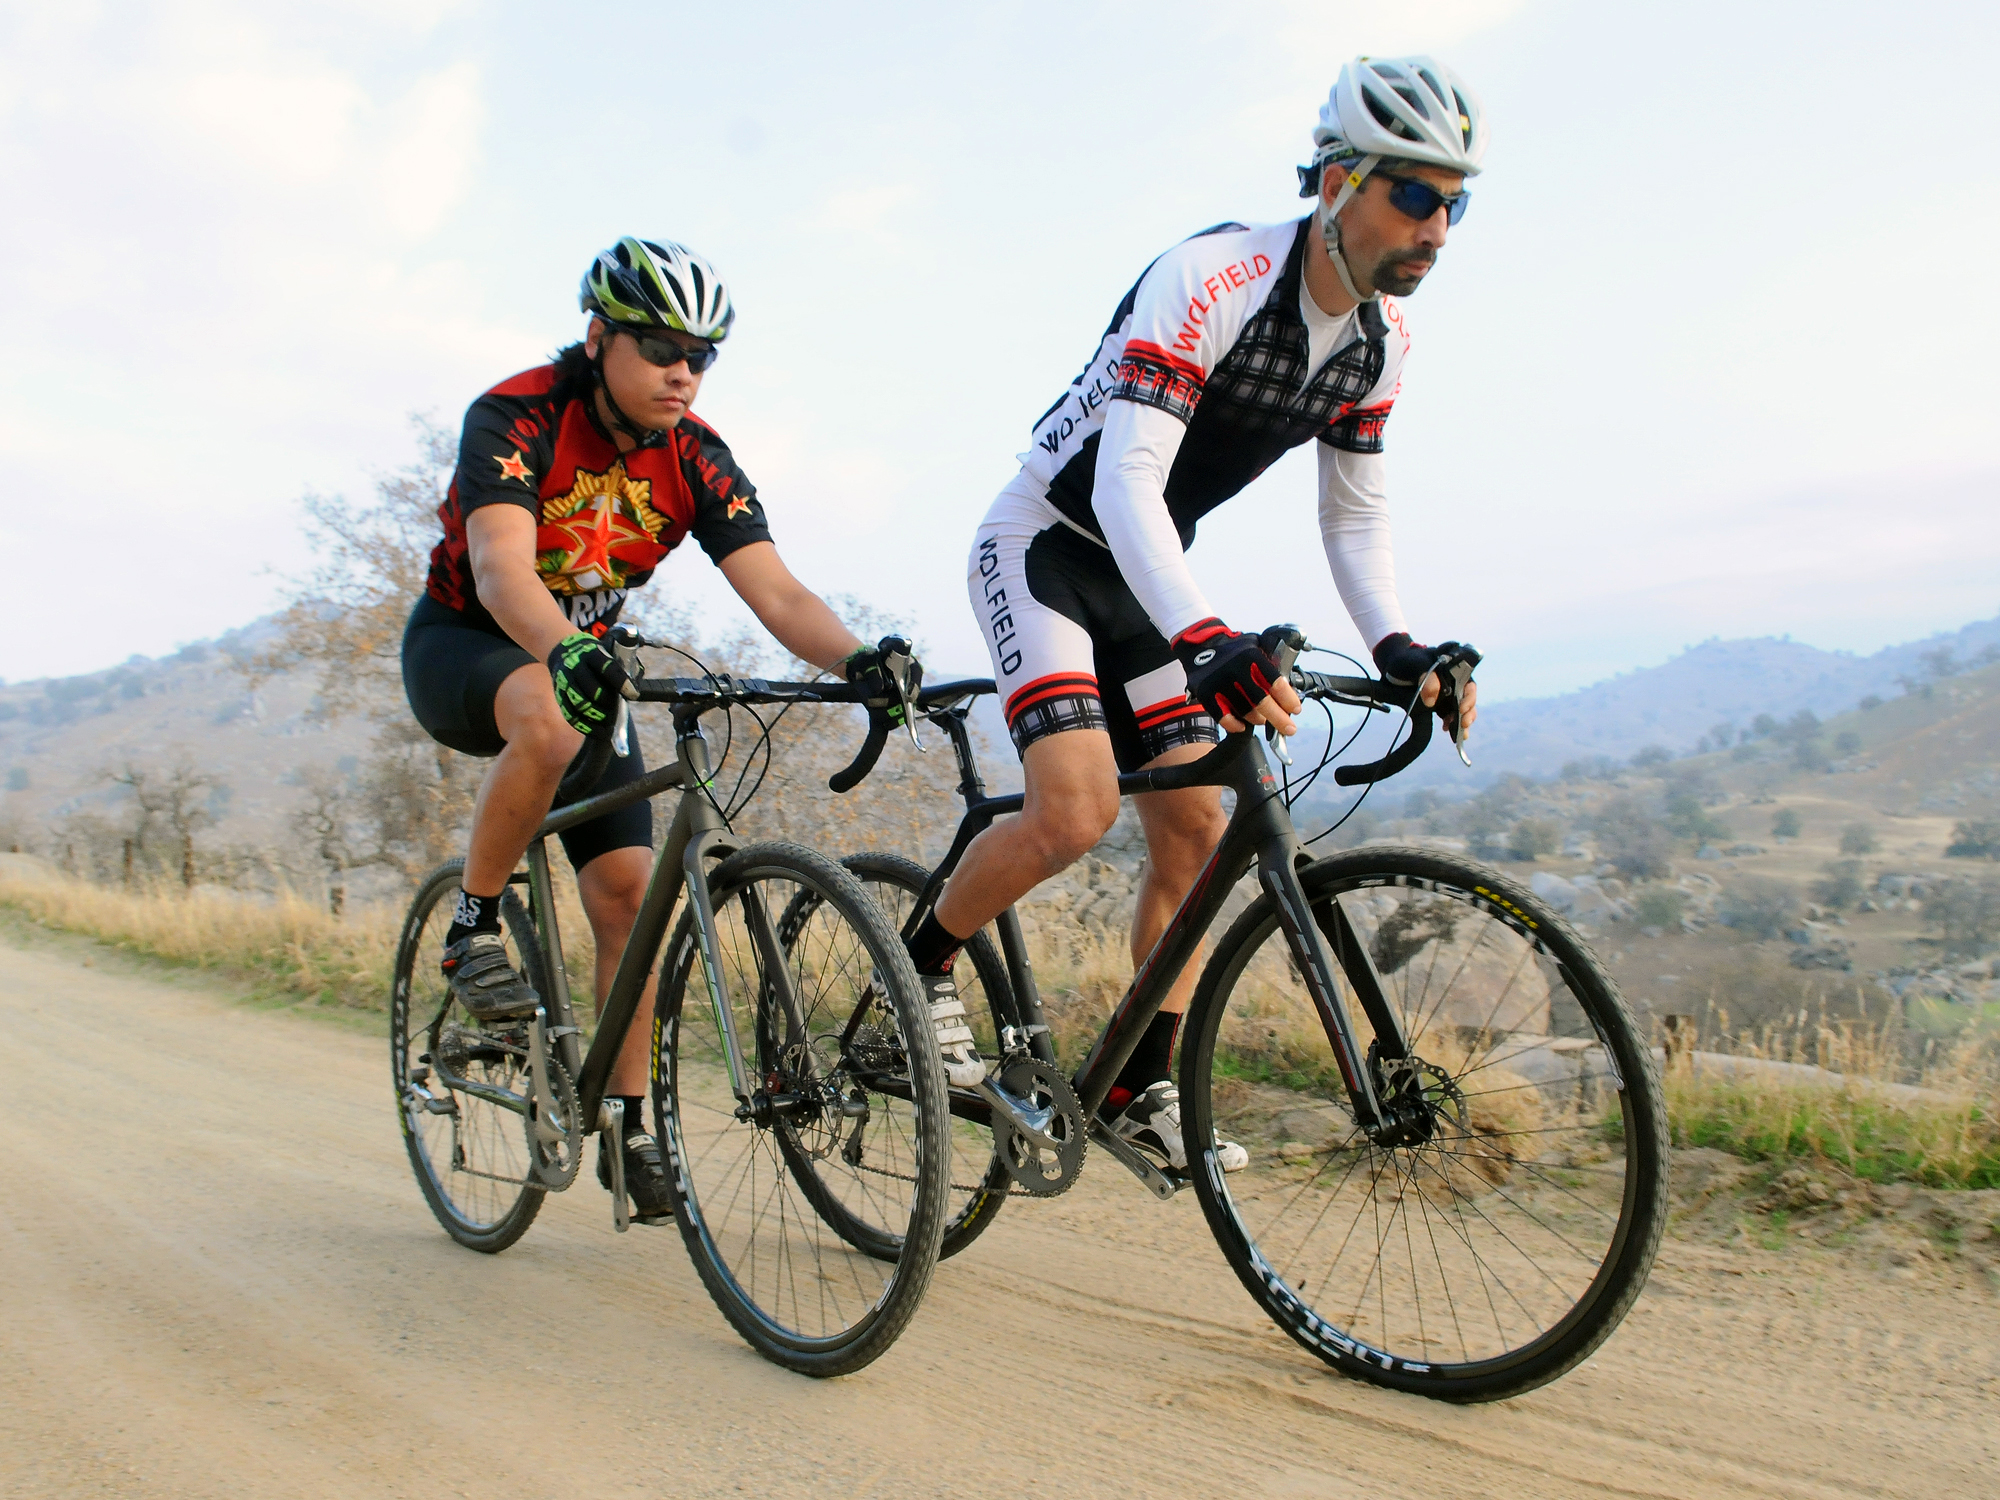 A Pair of Riders in the Gravel riding KHS Grit bicycles models